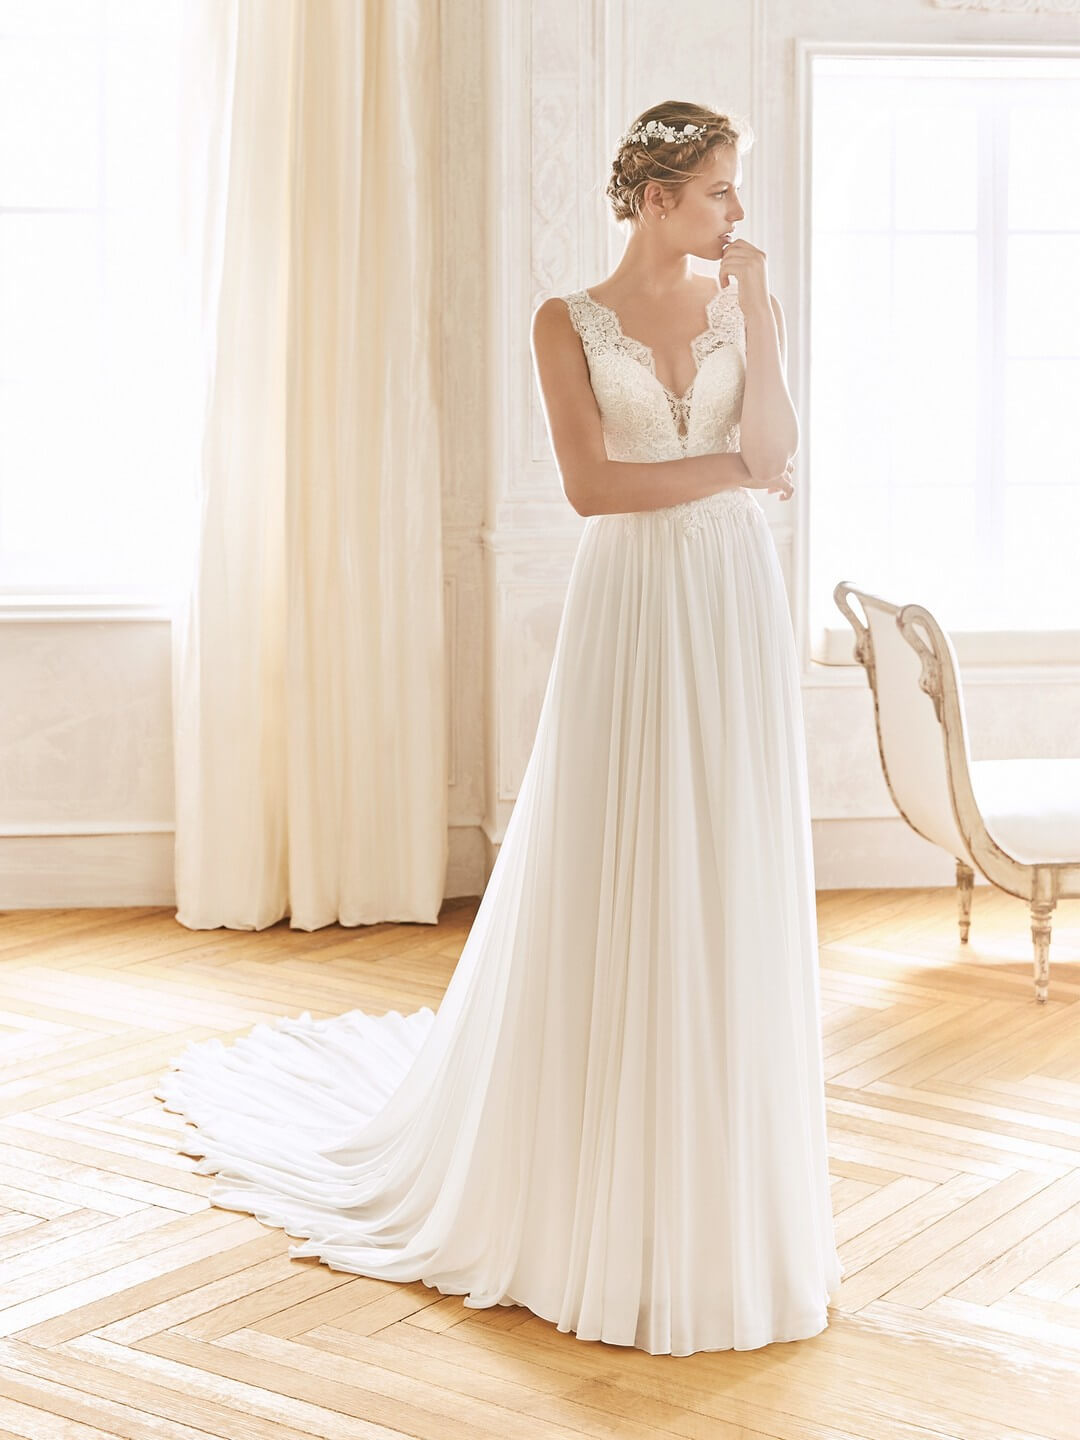 Νυφικό BALTA της collection St. Patrick La Sposa